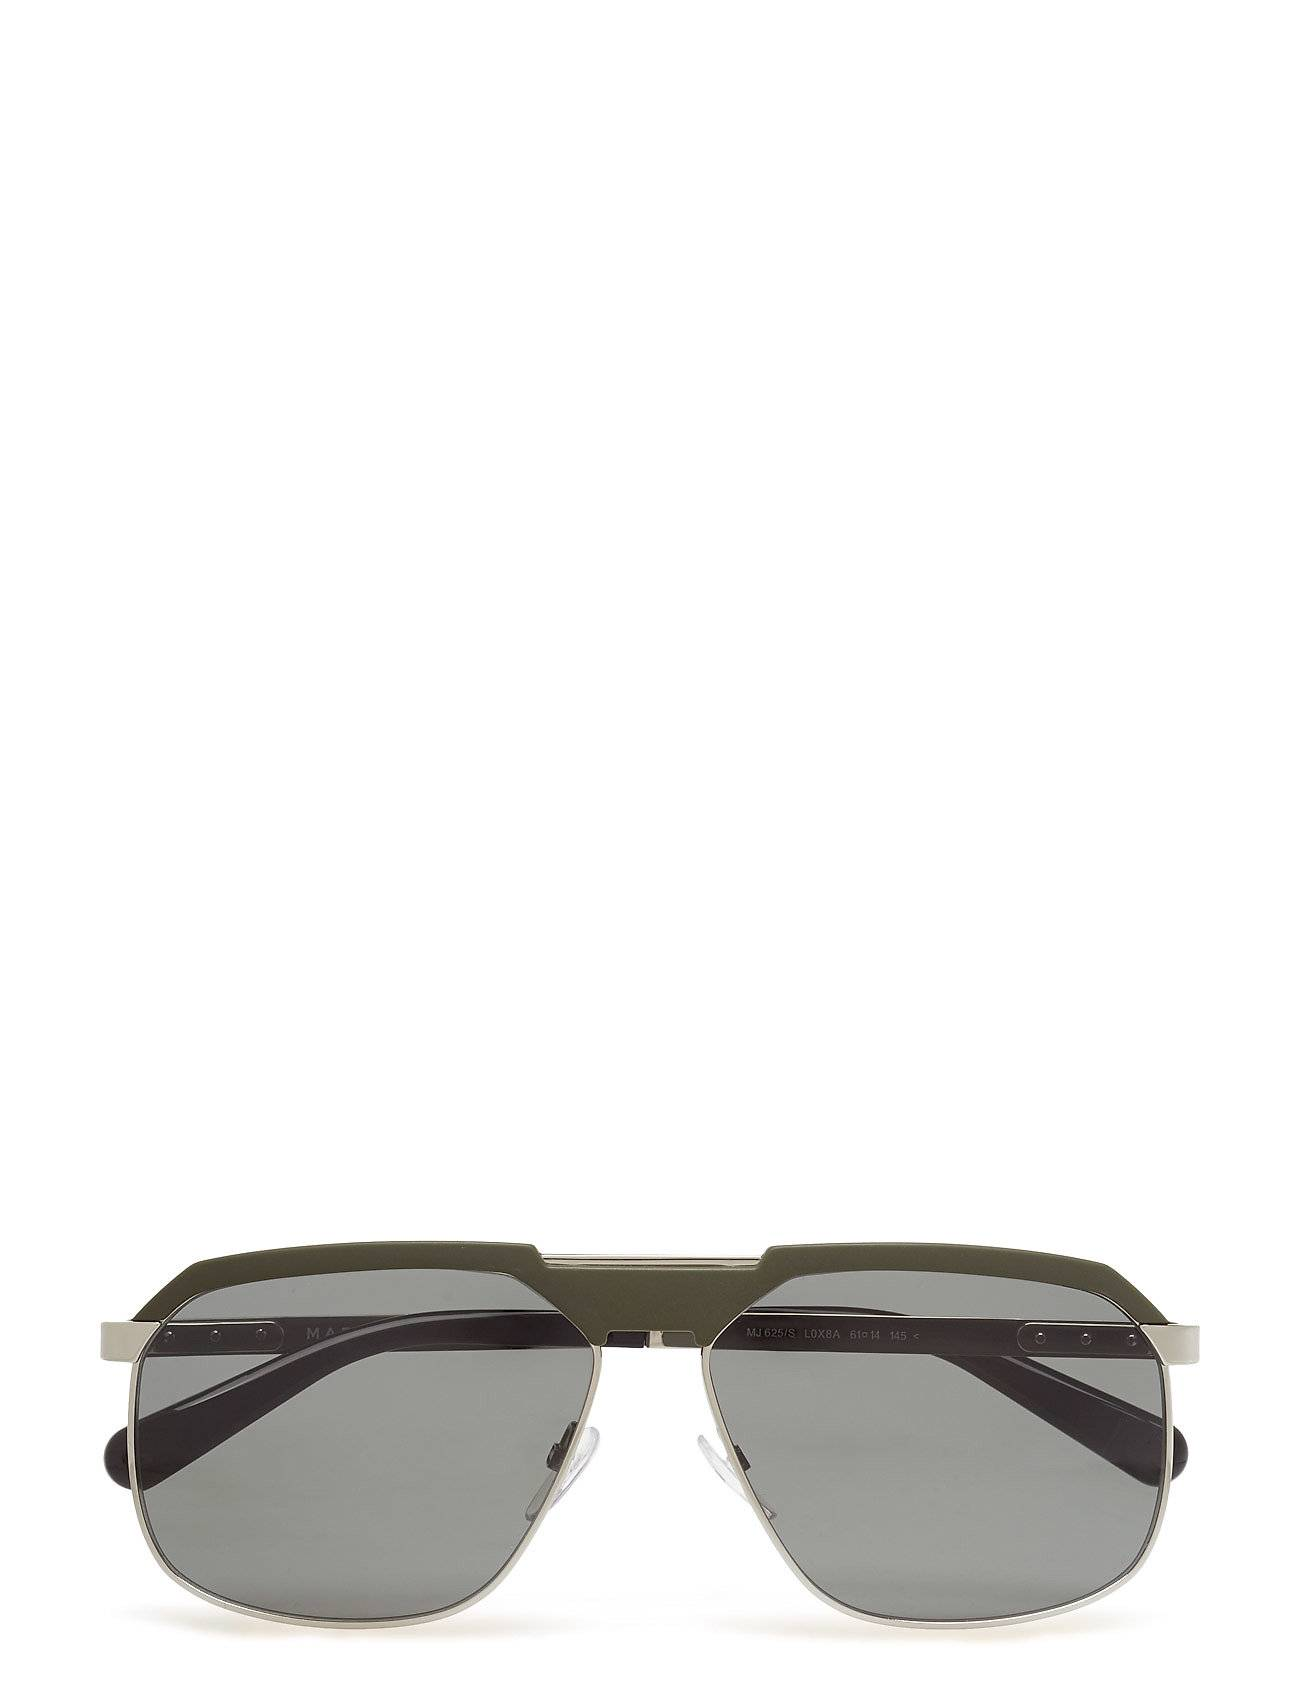 Image of Marc Jacobs Sunglasses Mj 625/S Pilottilasit Aurinkolasit Harmaa Marc Jacobs Sunglasses